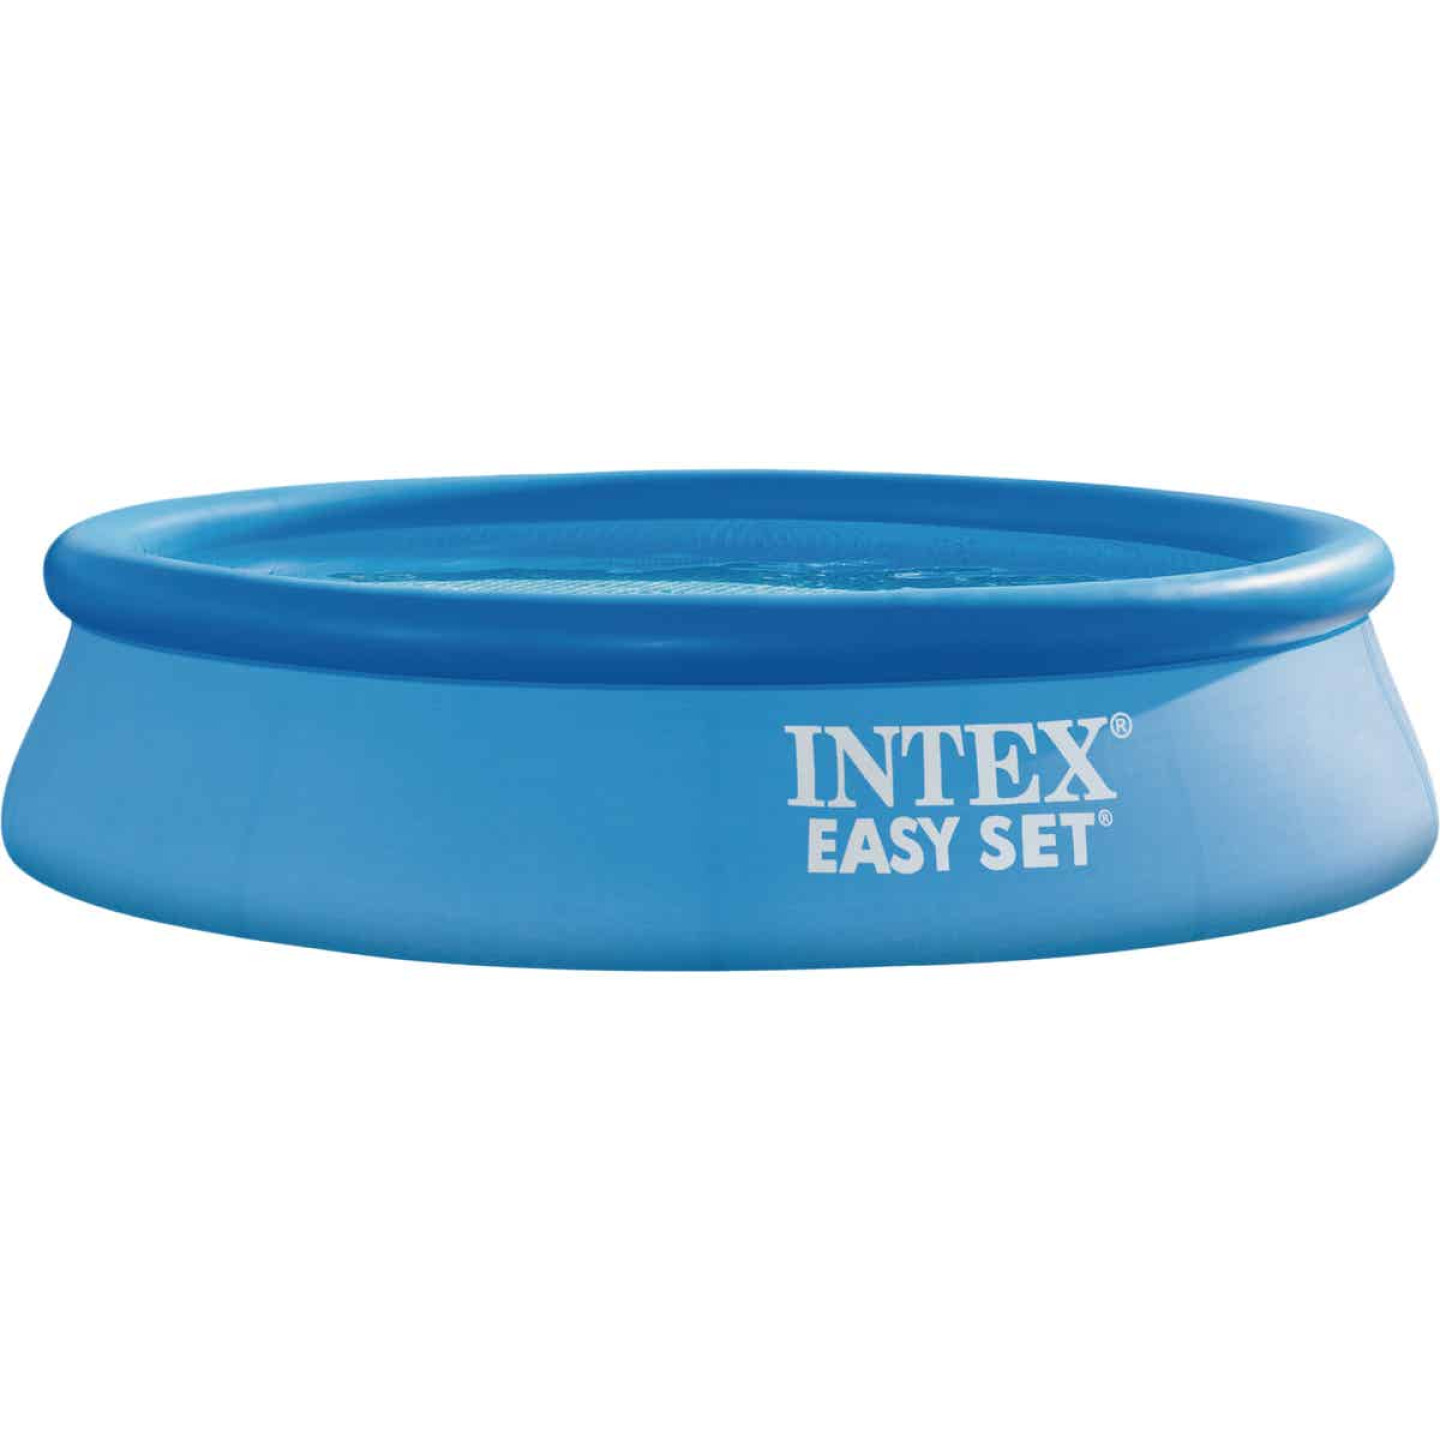 Intex Easy Set 24 In. x 8 Ft. Pool Image 1